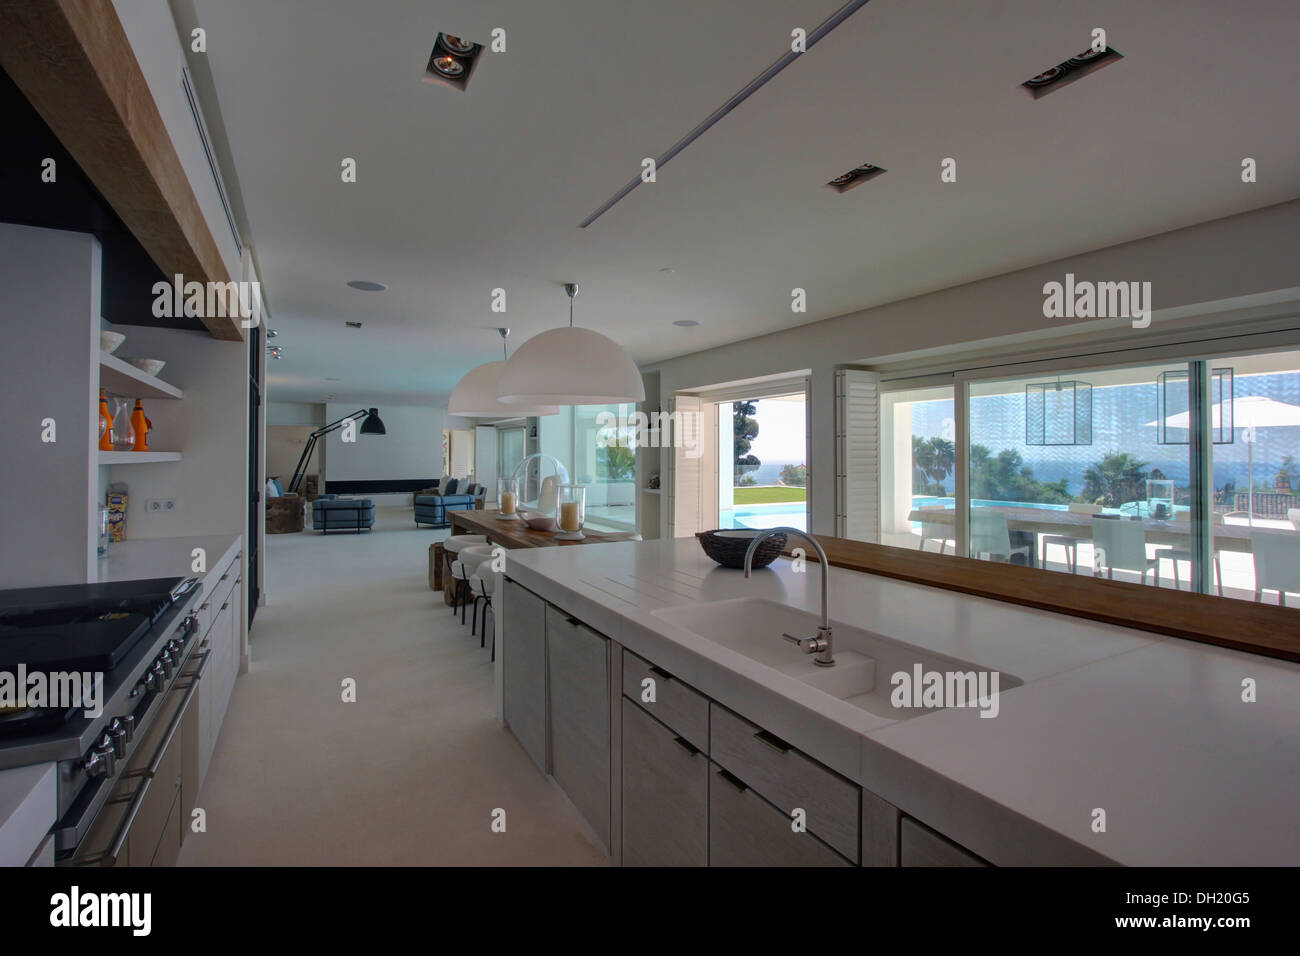 Sink and chrome tap in fitted unit below window in large for Large galley kitchen design ideas